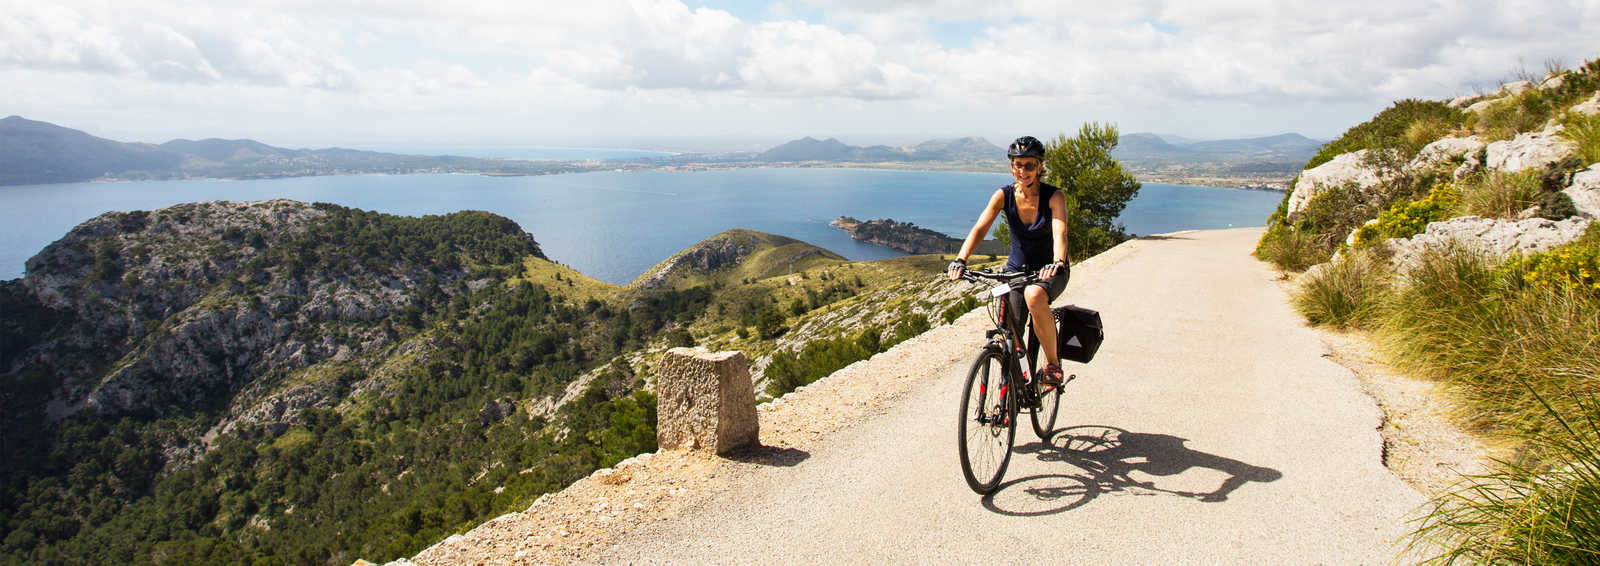 Cycling towards the Talaia d'Albercutx